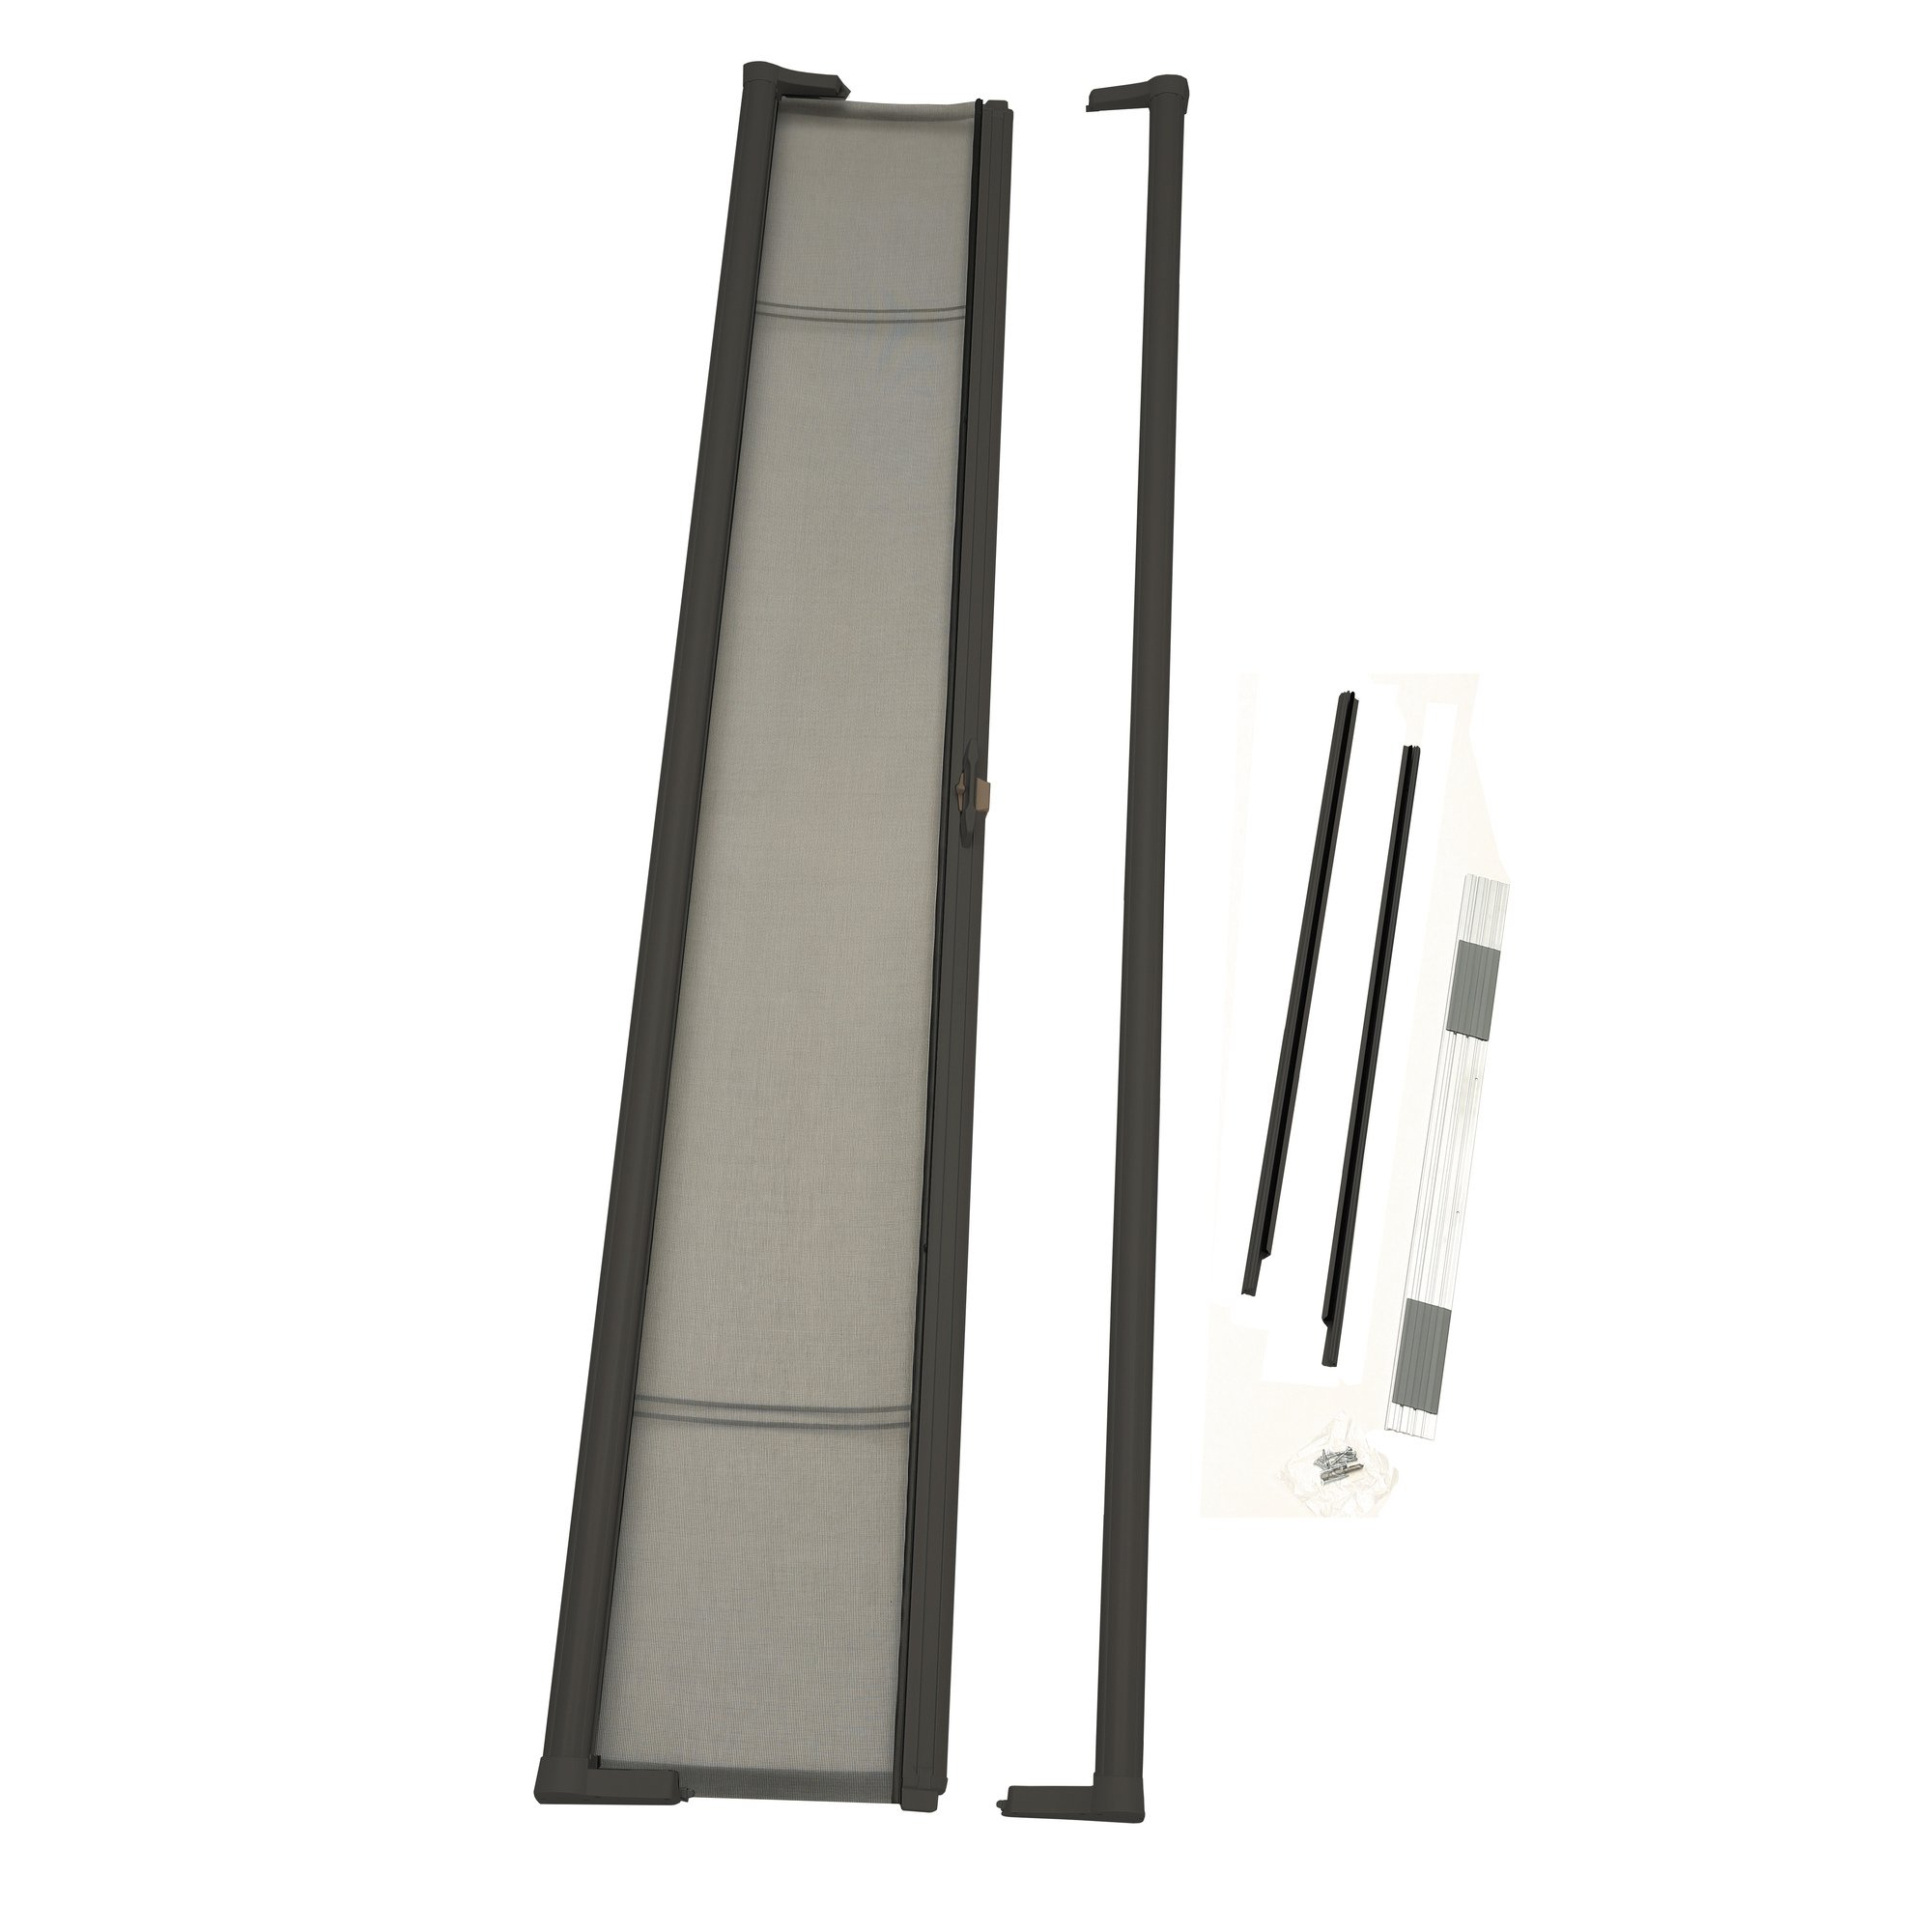 ODL Brisa BRTLBE Bronze Tall Retractable Screen Door by ODL